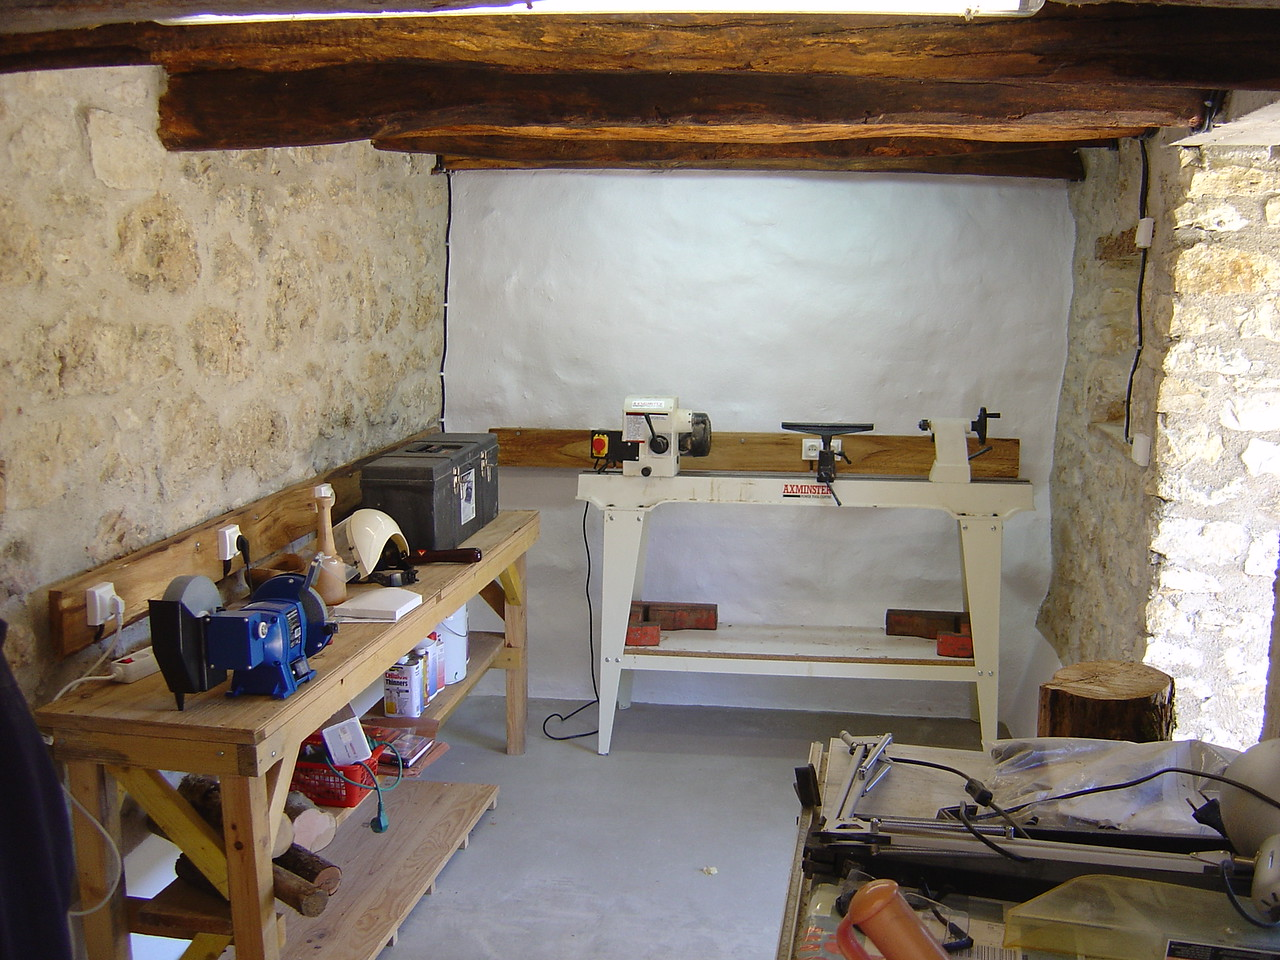 We did up one of the stalls as a dedicated wood-turning studio to make bowls and stuff.